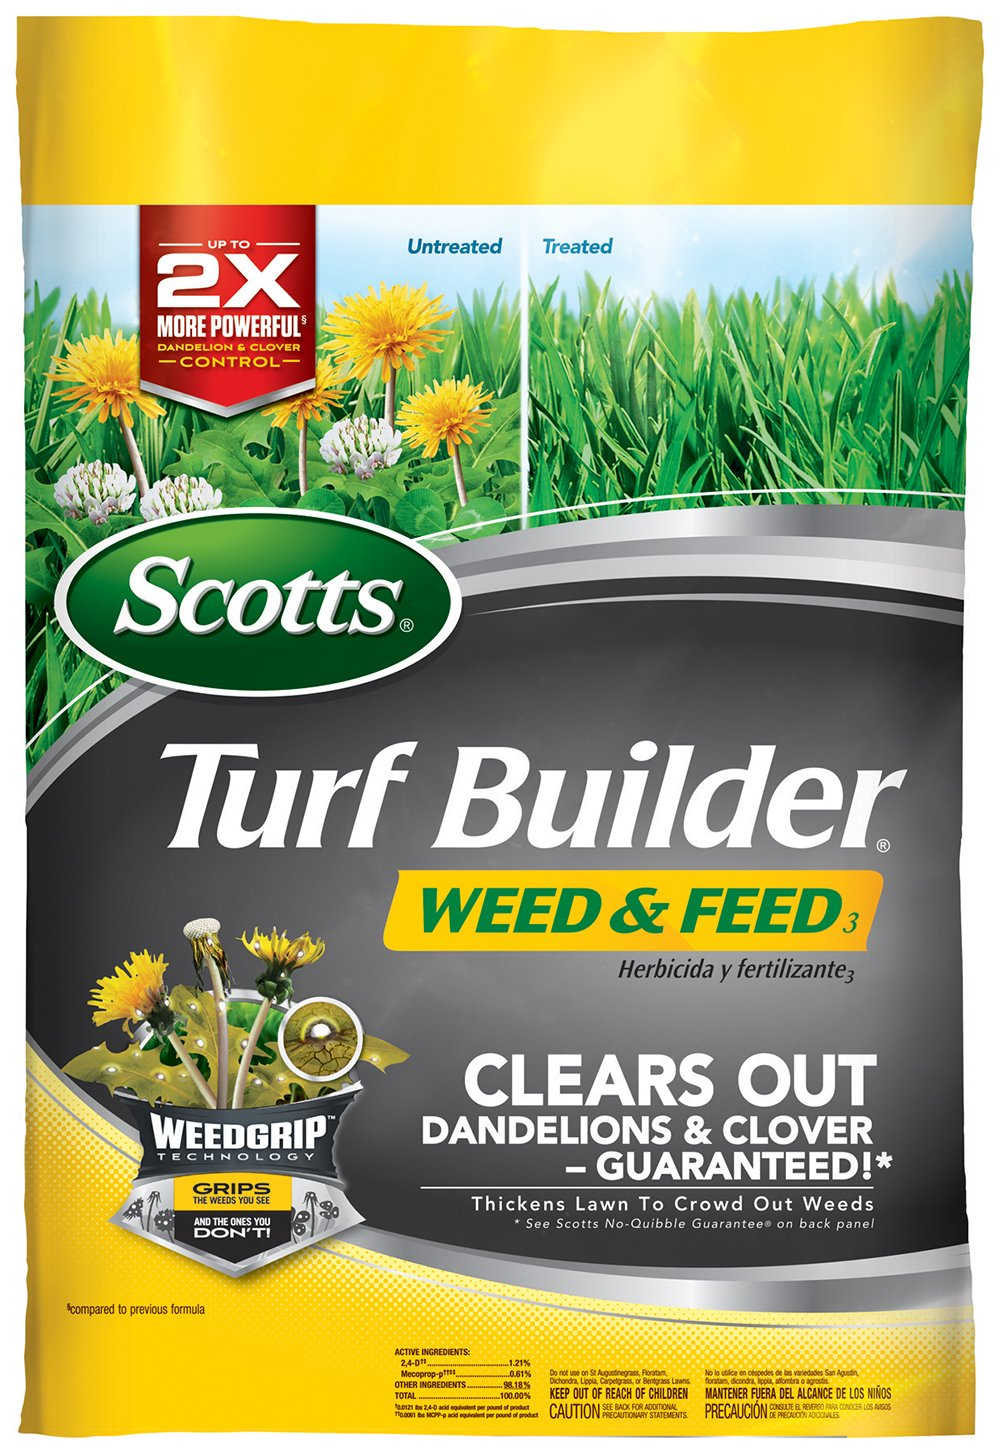 Scotts Turf Builder Weed and Feed (Not Sold in Pinellas County, FL)